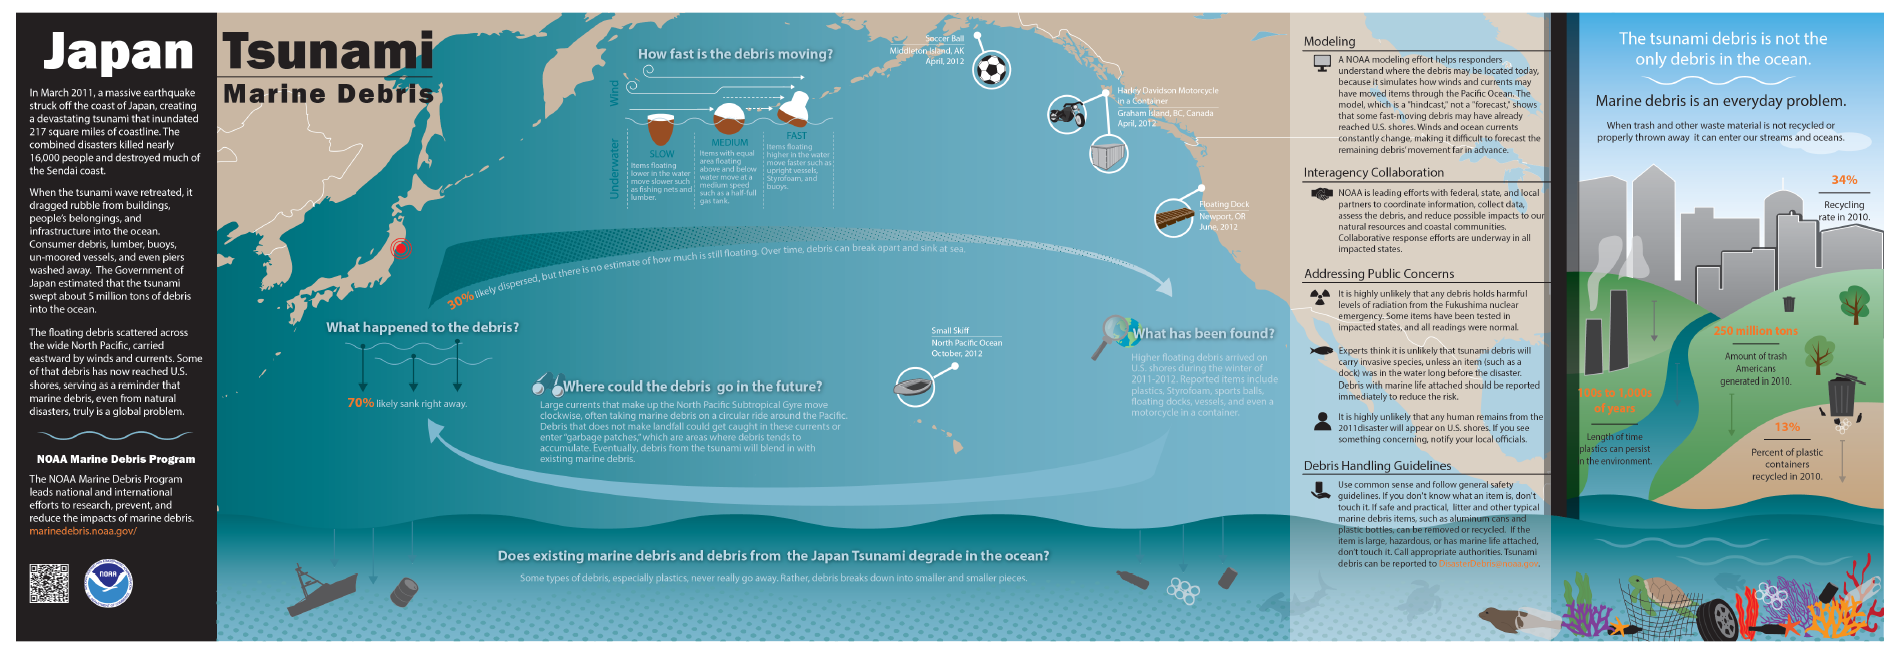 Learn more about the issue of Japan tsunami marine debris with this NOAA infographic. Click to enlarge and download.